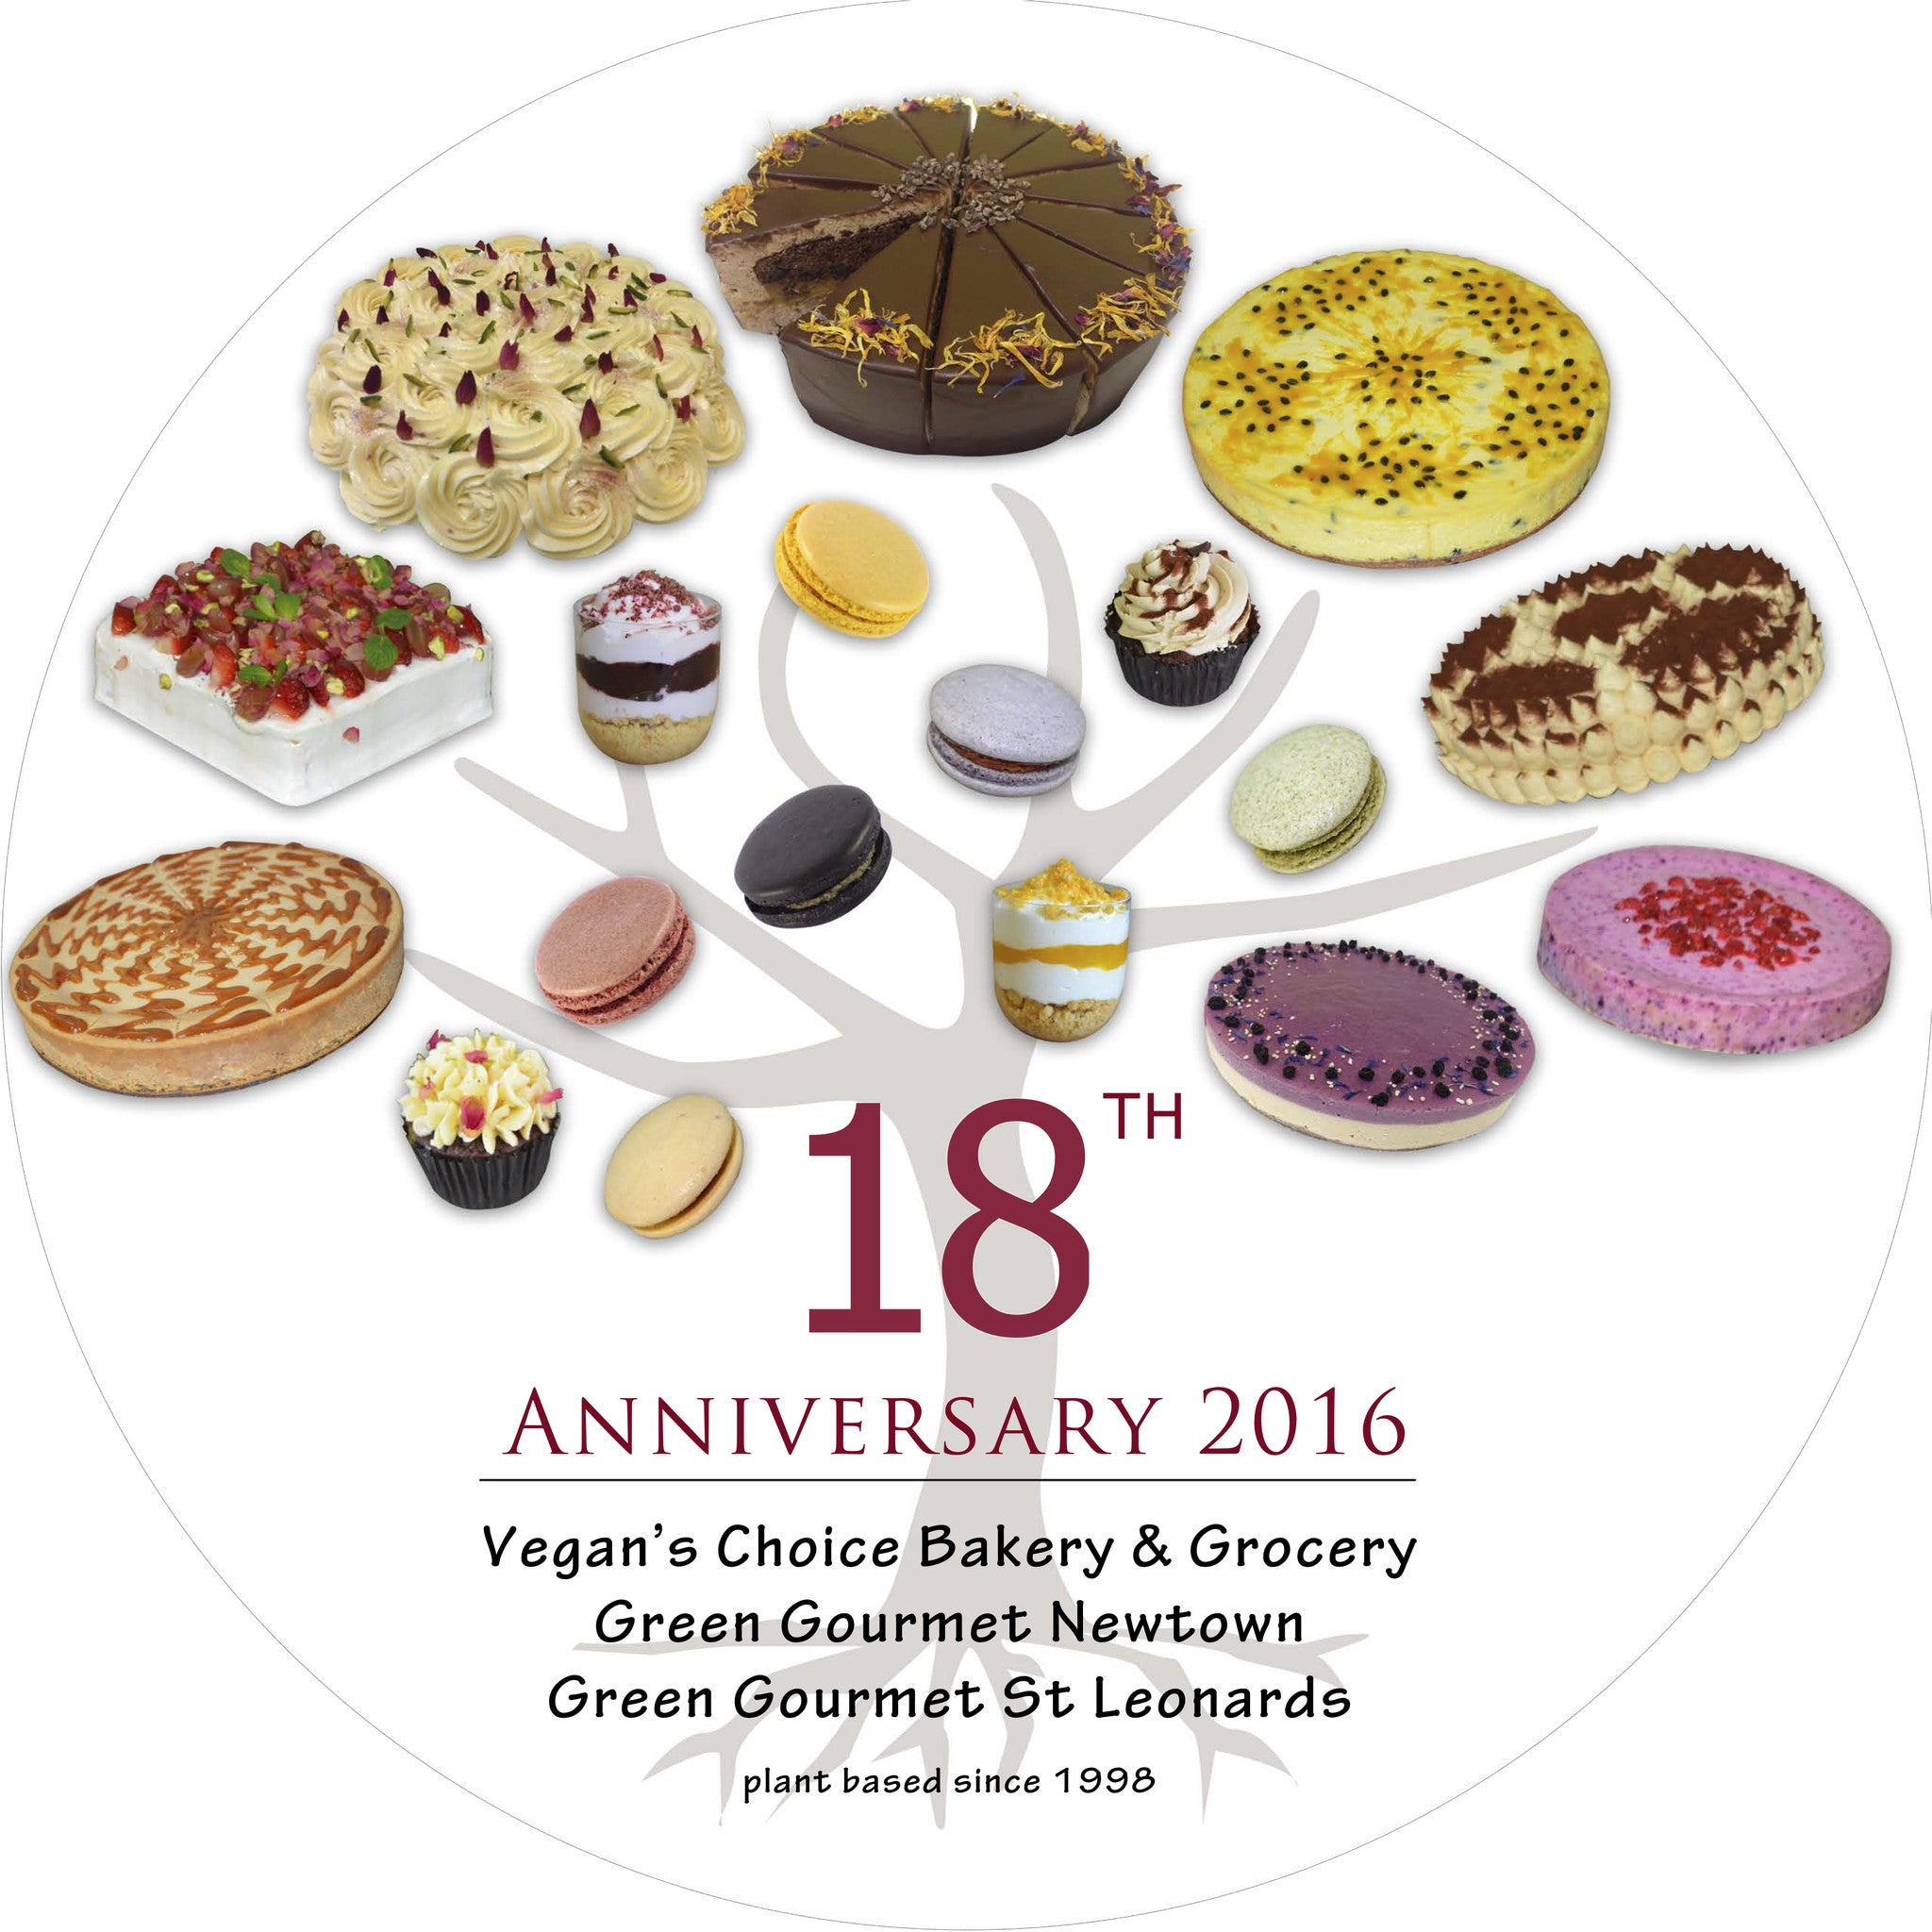 Celebrating 18 years of Green Gourmet